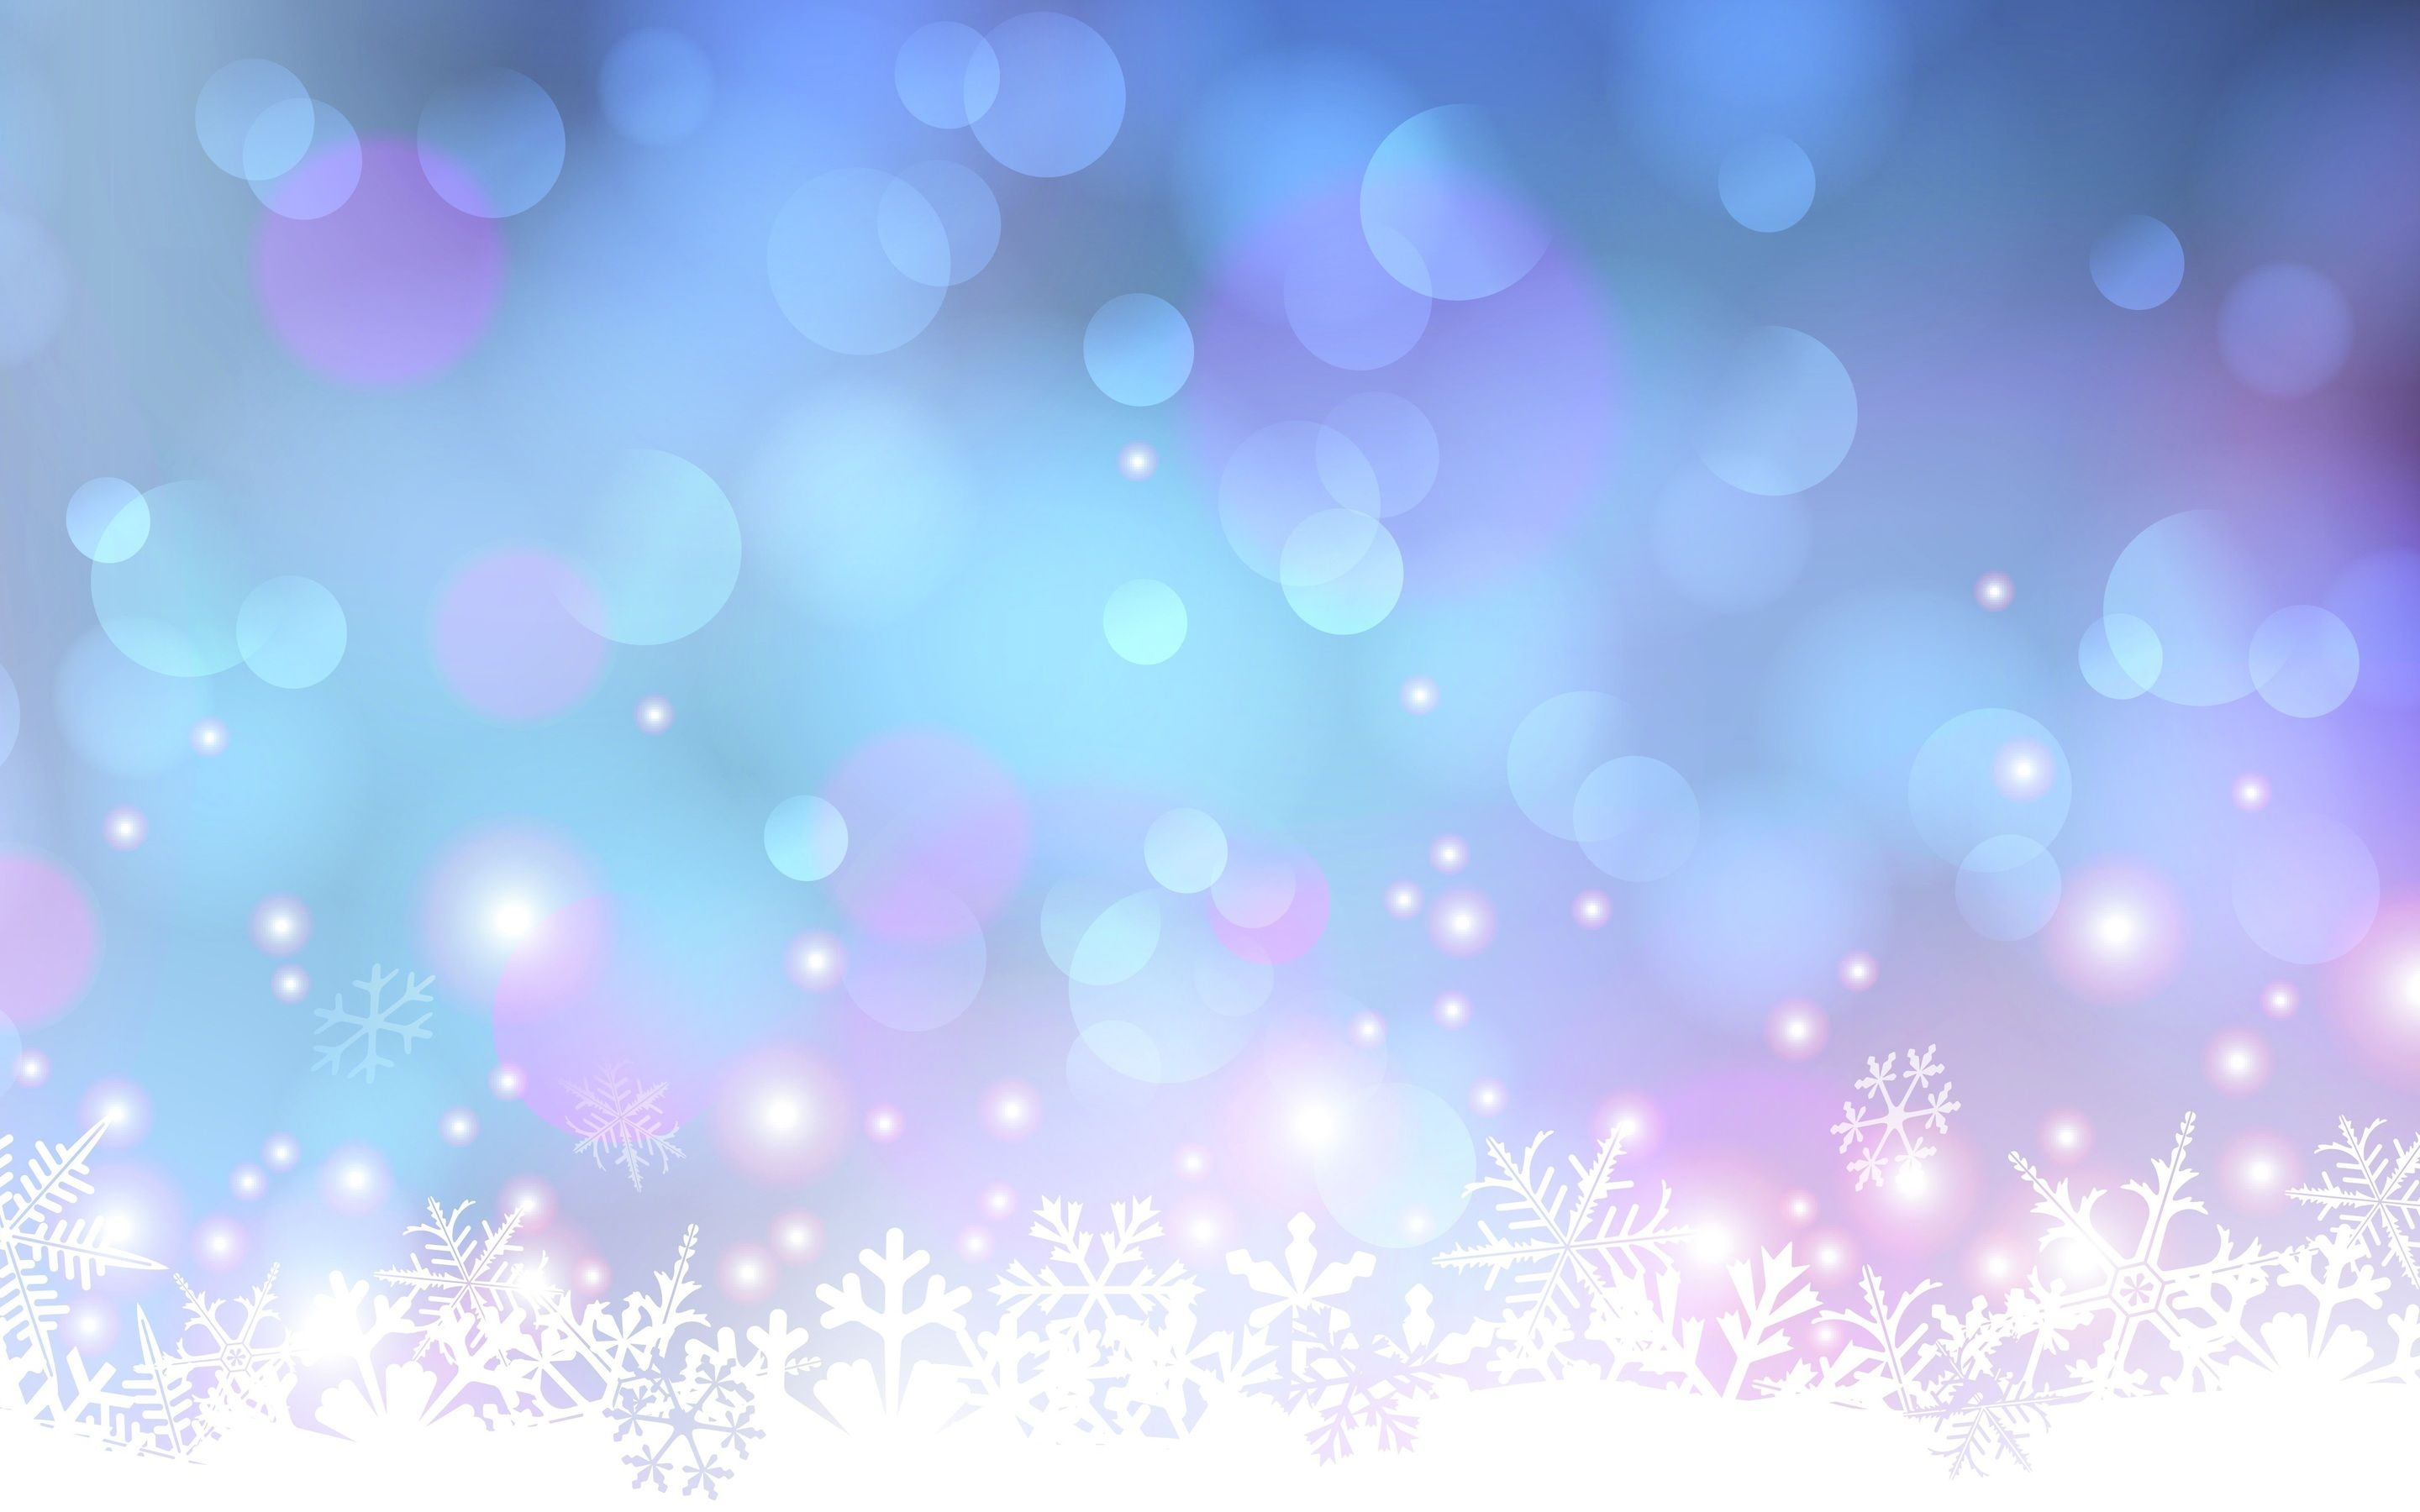 christmas backgrounds wallpapers photos pictures images snowflake wallpaper holiday wallpaper holiday background images christmas backgrounds wallpapers